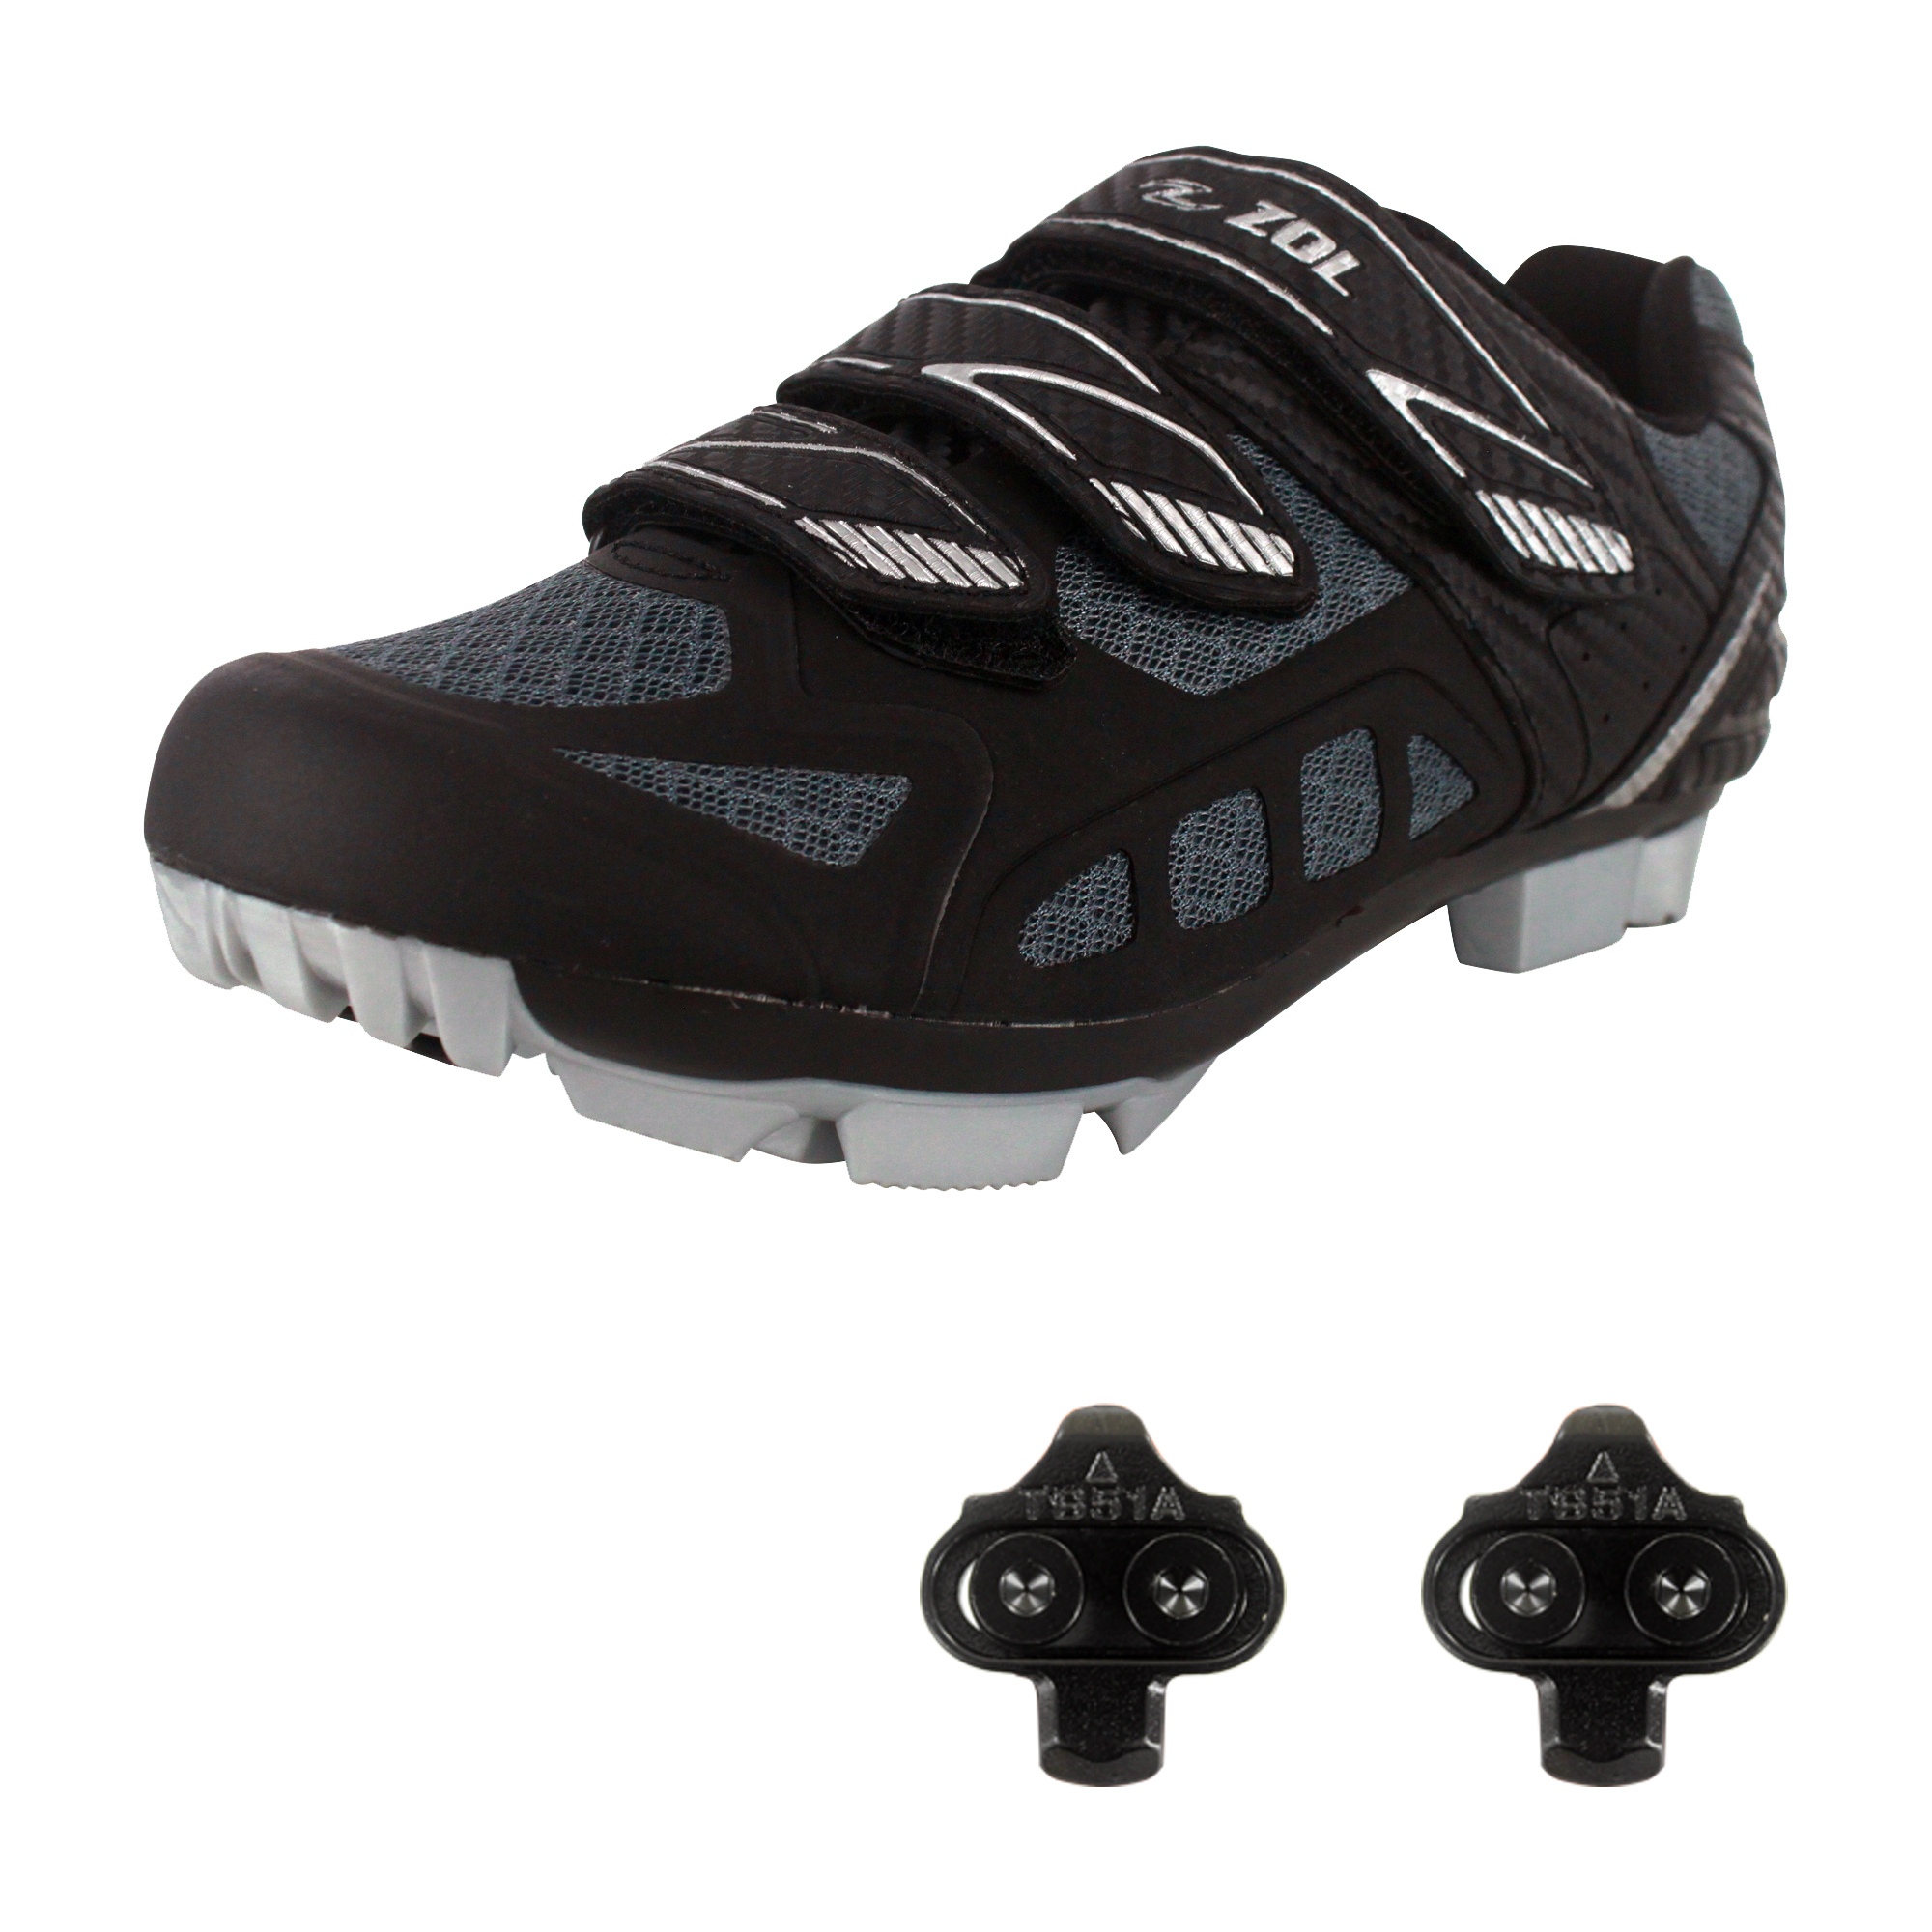 Zol Predator MTB Mountain Bike and Indoor Cycling Shoes ...